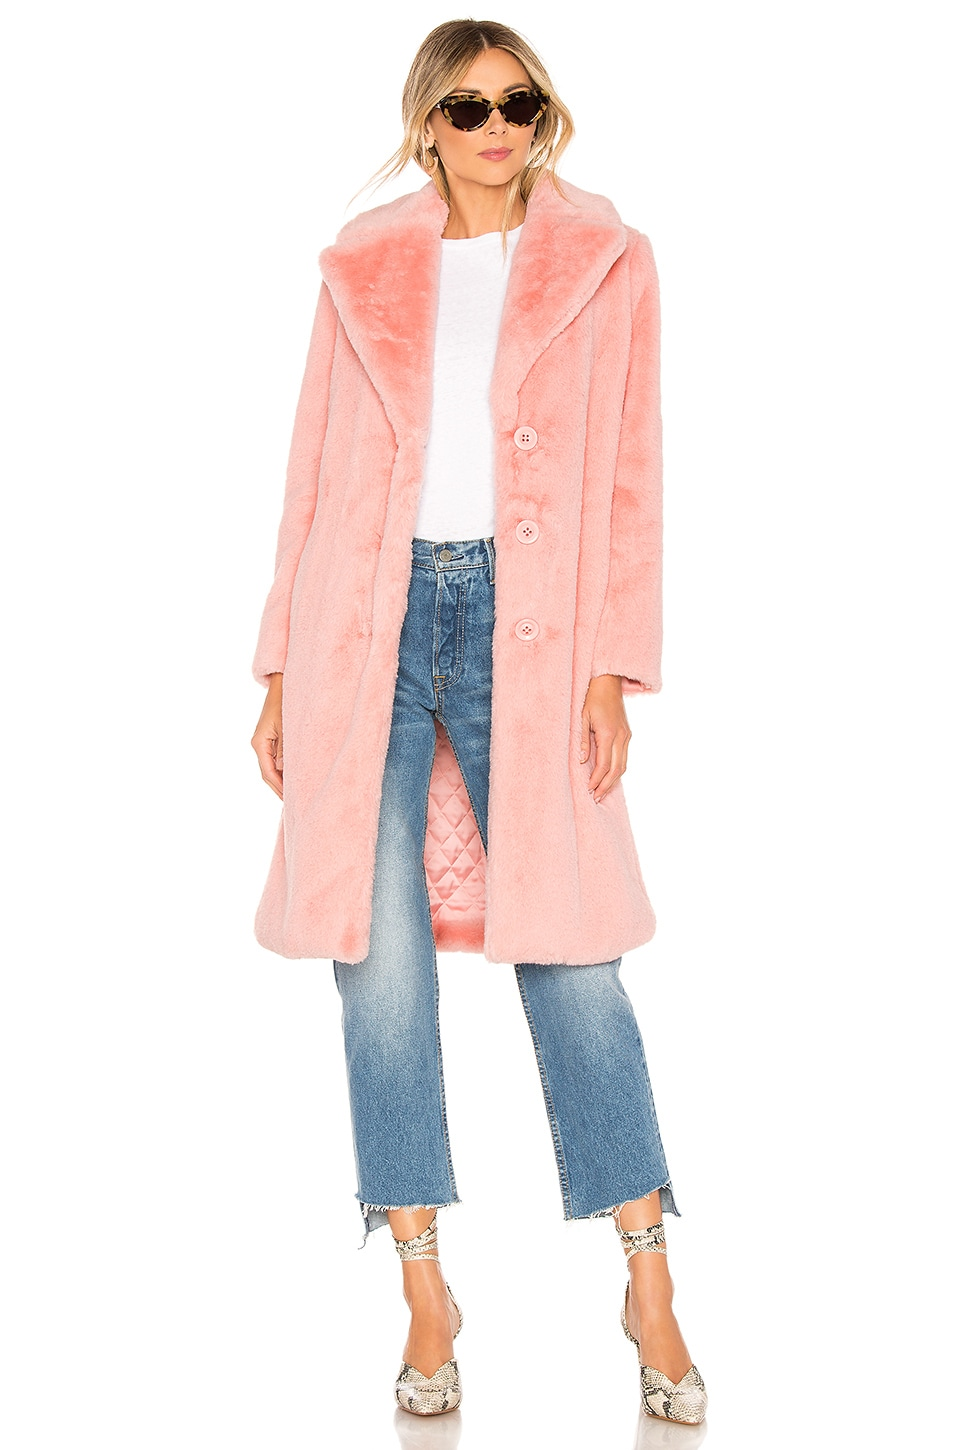 Alice + Olivia Foster Faux Fur Coat in Shell Pink